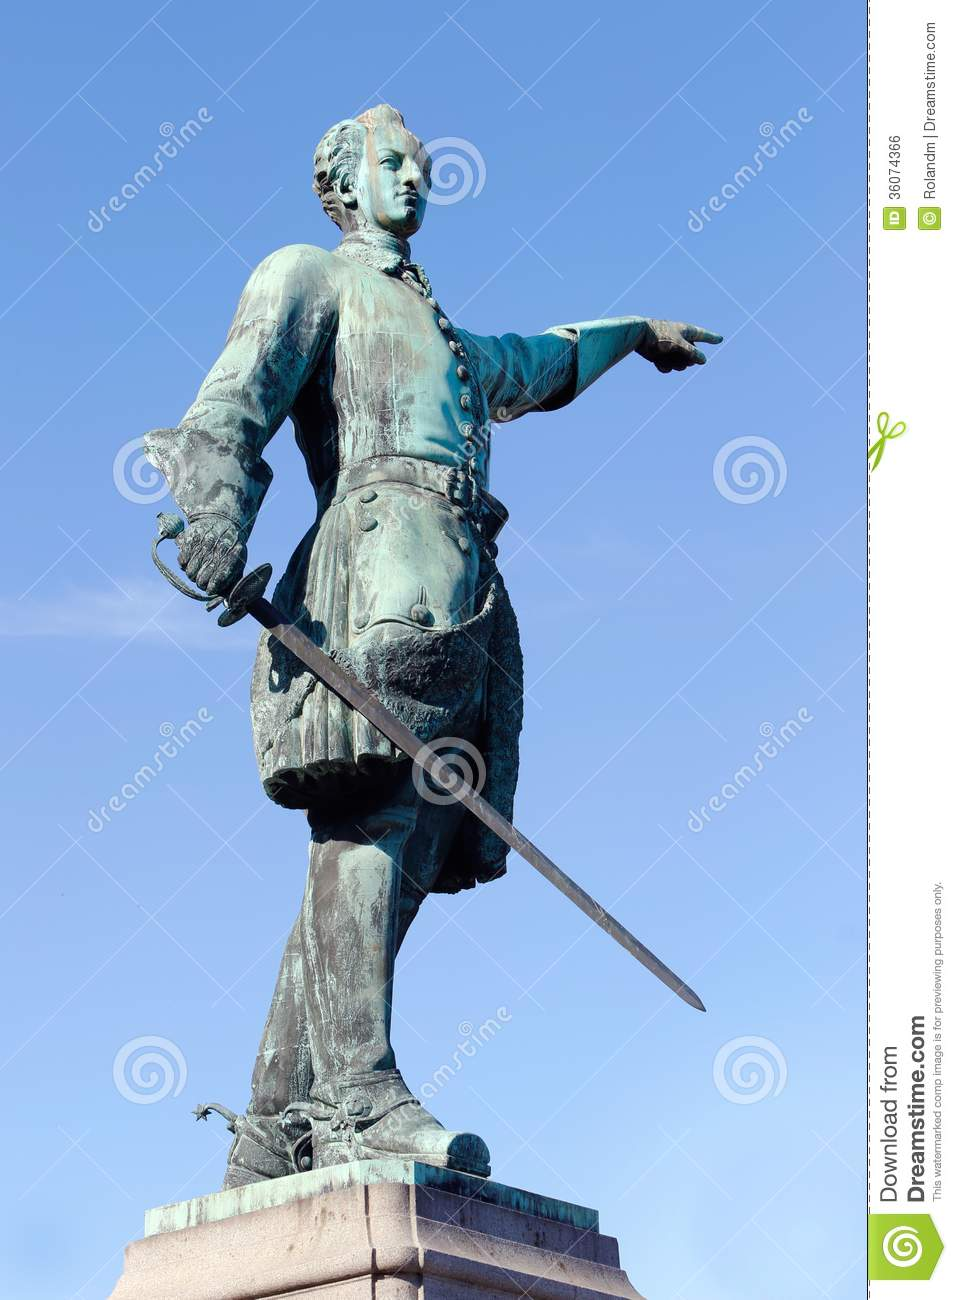 Karl Xii Statue Royalty Free Stock Image Image 36074366